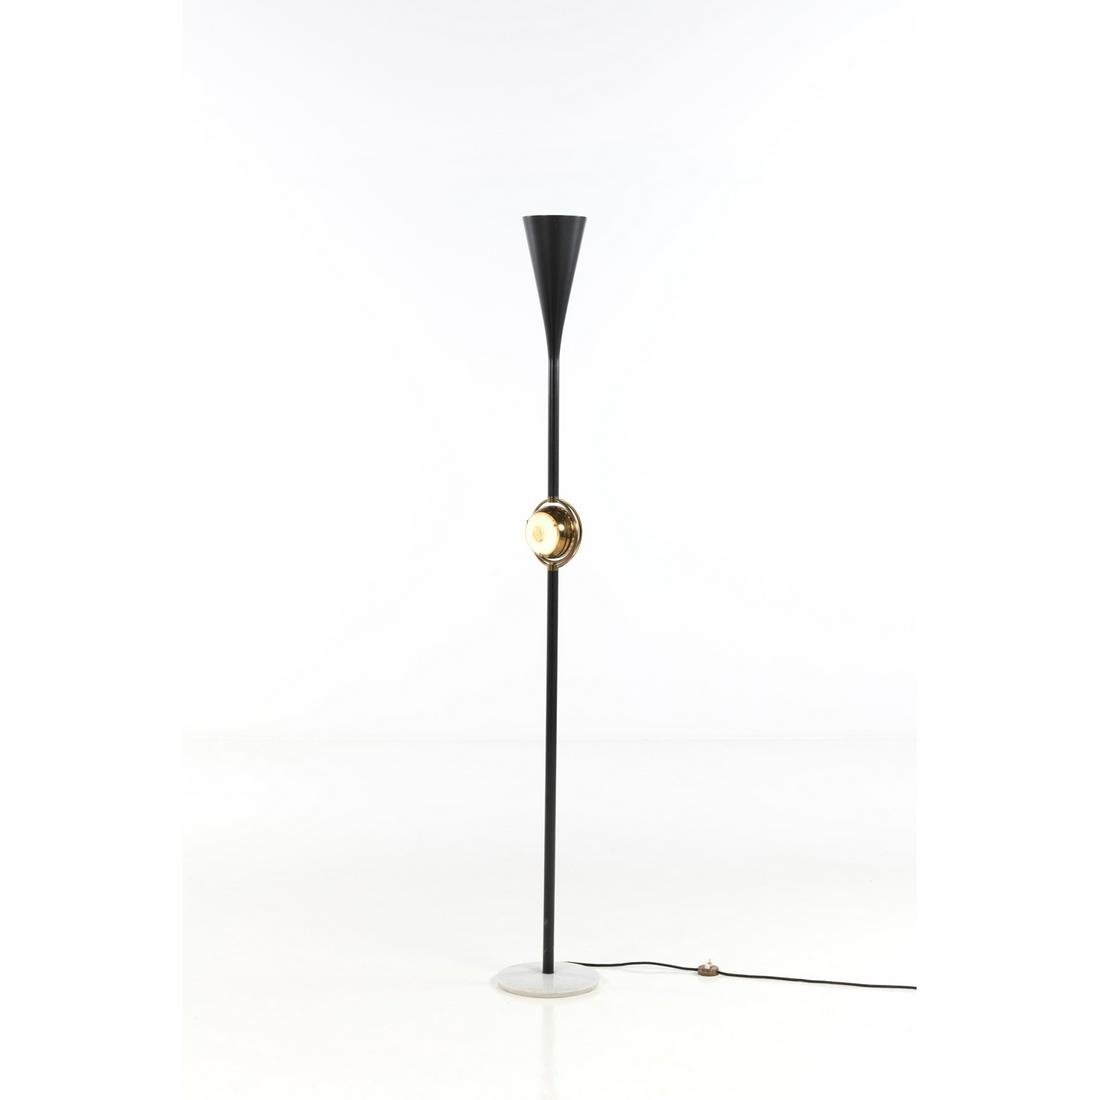 Angelo Lelli (1911-1979) Model no. 12555 Floor lamp